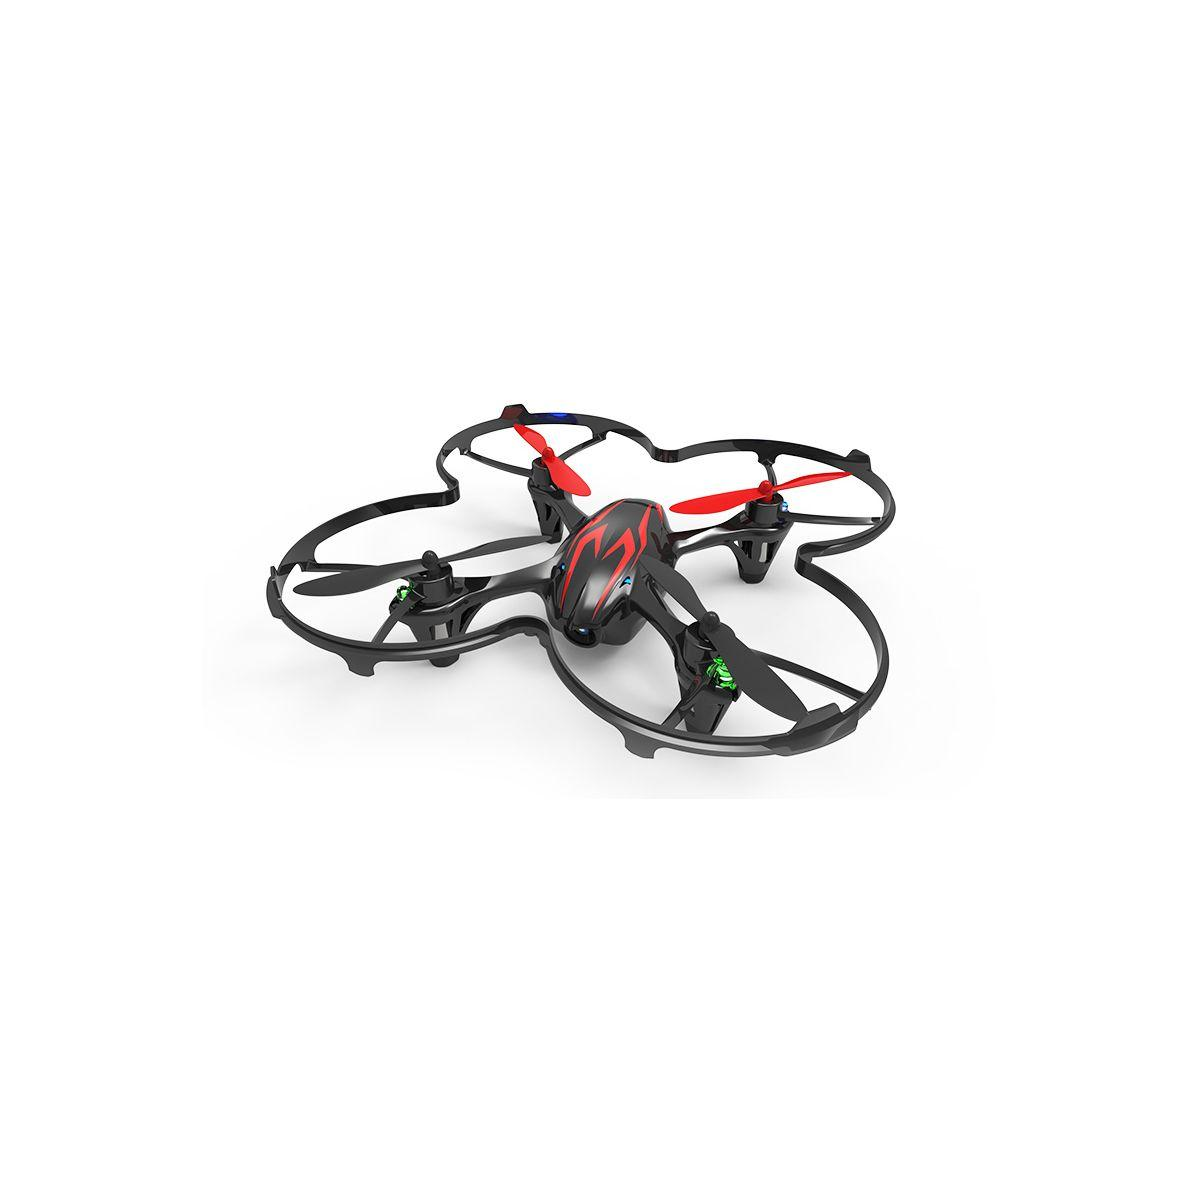 Drones husban x4 mini (photo)